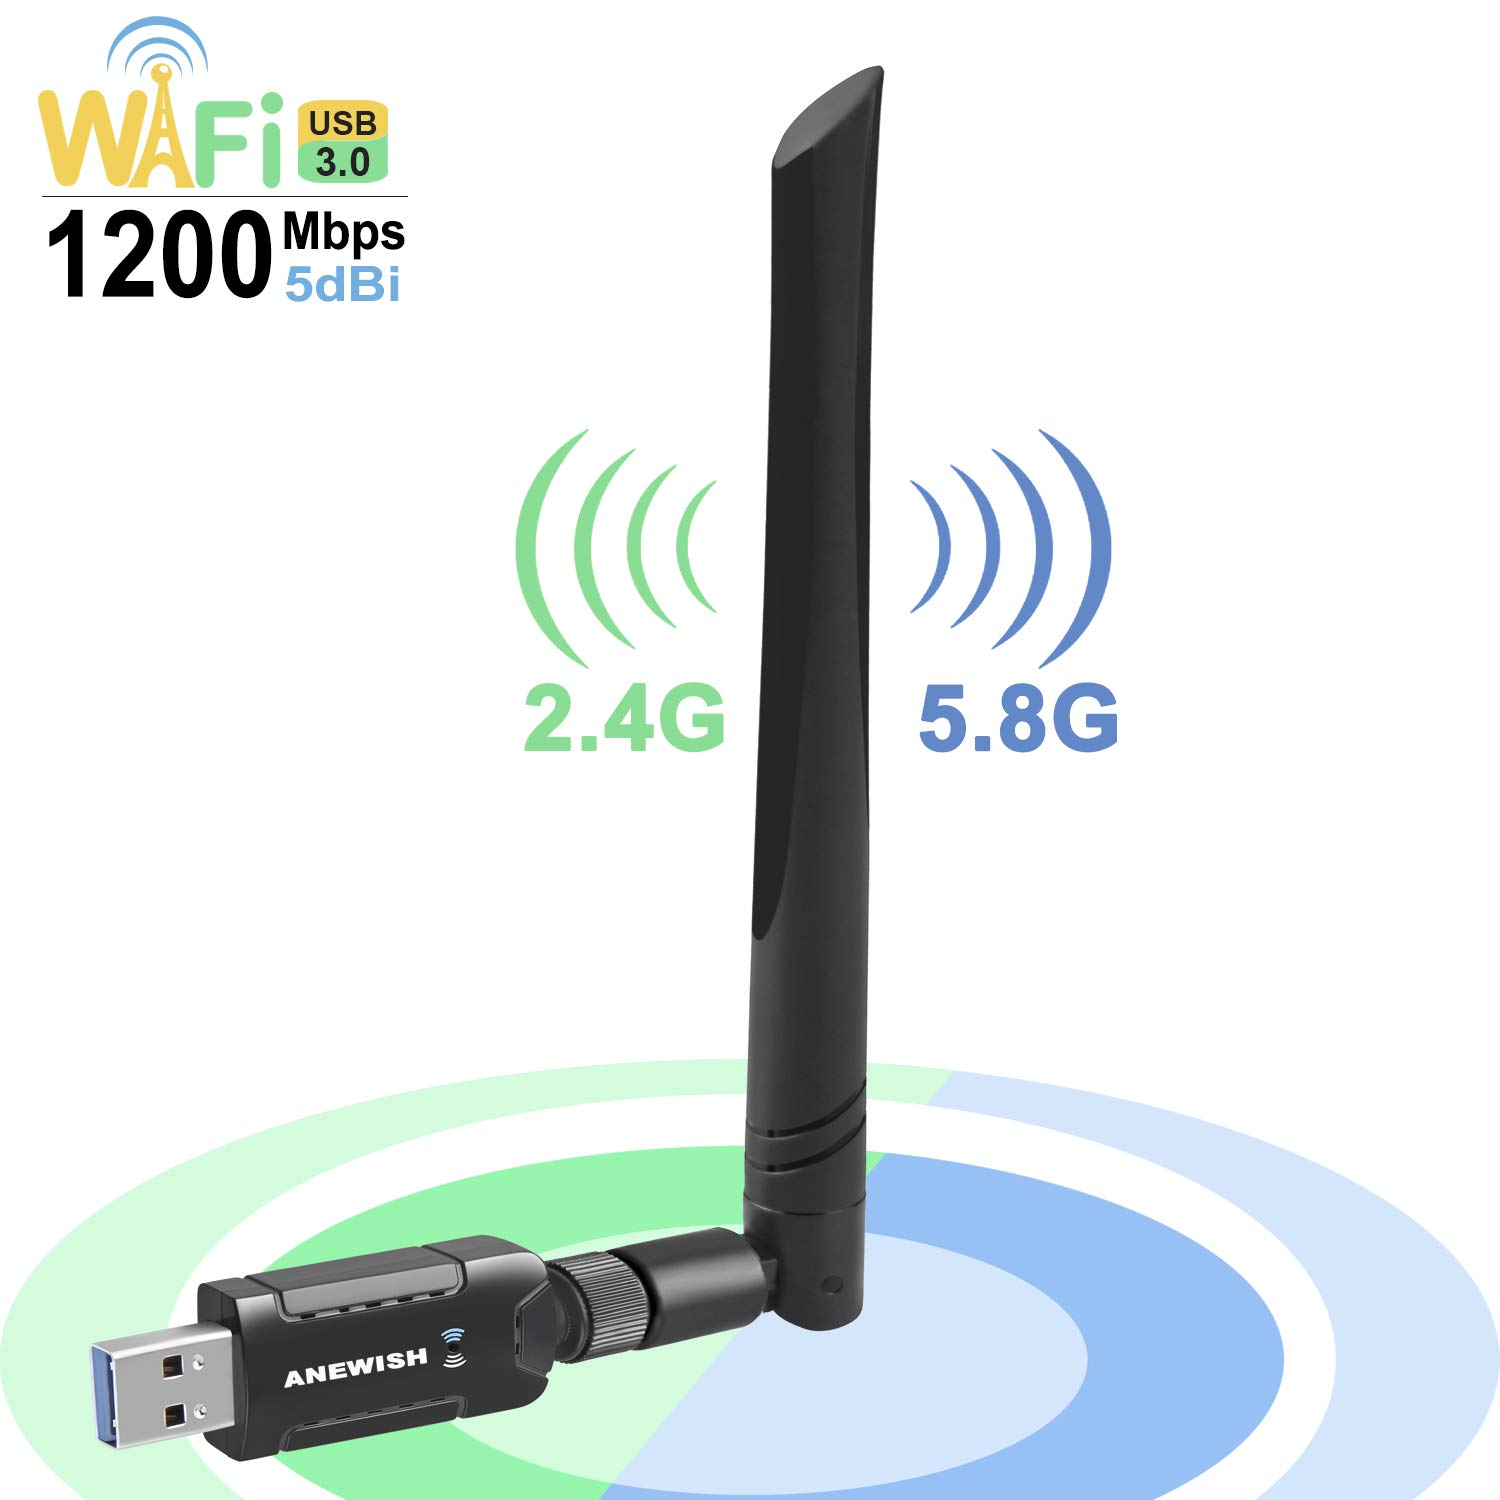 ANEWISH 1200Mbps Wireless USB WiFi Adapter 3.0 Network LAN Card with 5dBi Antenna Dual Band 2.4G/5G 802.11ac WiFi Adapter Compatible PC/Desktop/Laptop/Tablet, Windows 10/8.1/8/7/XP, Mac OS